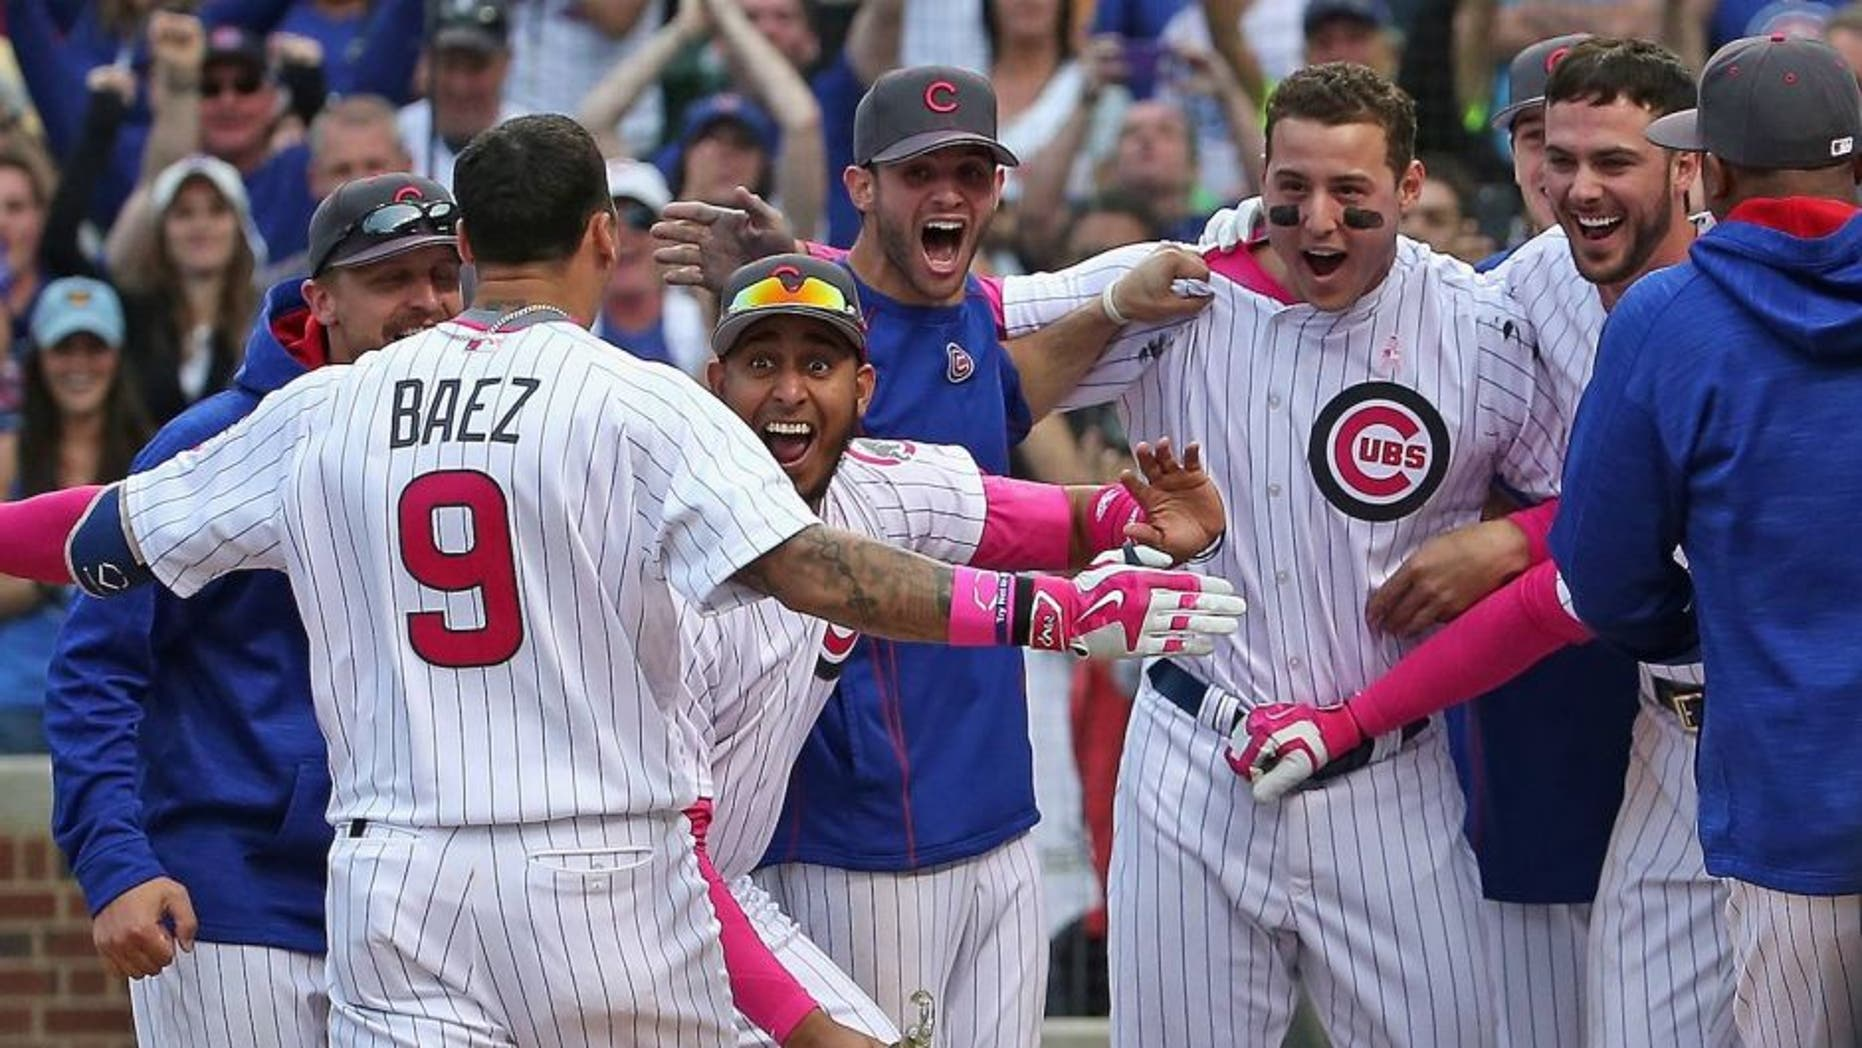 CHICAGO, IL - MAY 08: Javier Baez #9 of the Chicago Cubs is greeted by teammates after hitting the game-winning, walk off home run against the Washington Nationals at Wrigley Field on May 8, 2016 in Chicago, Illinois. The Cubs defeated the Nationals 4-3 in 13 innings. (Photo by Jonathan Daniel/Getty Images)